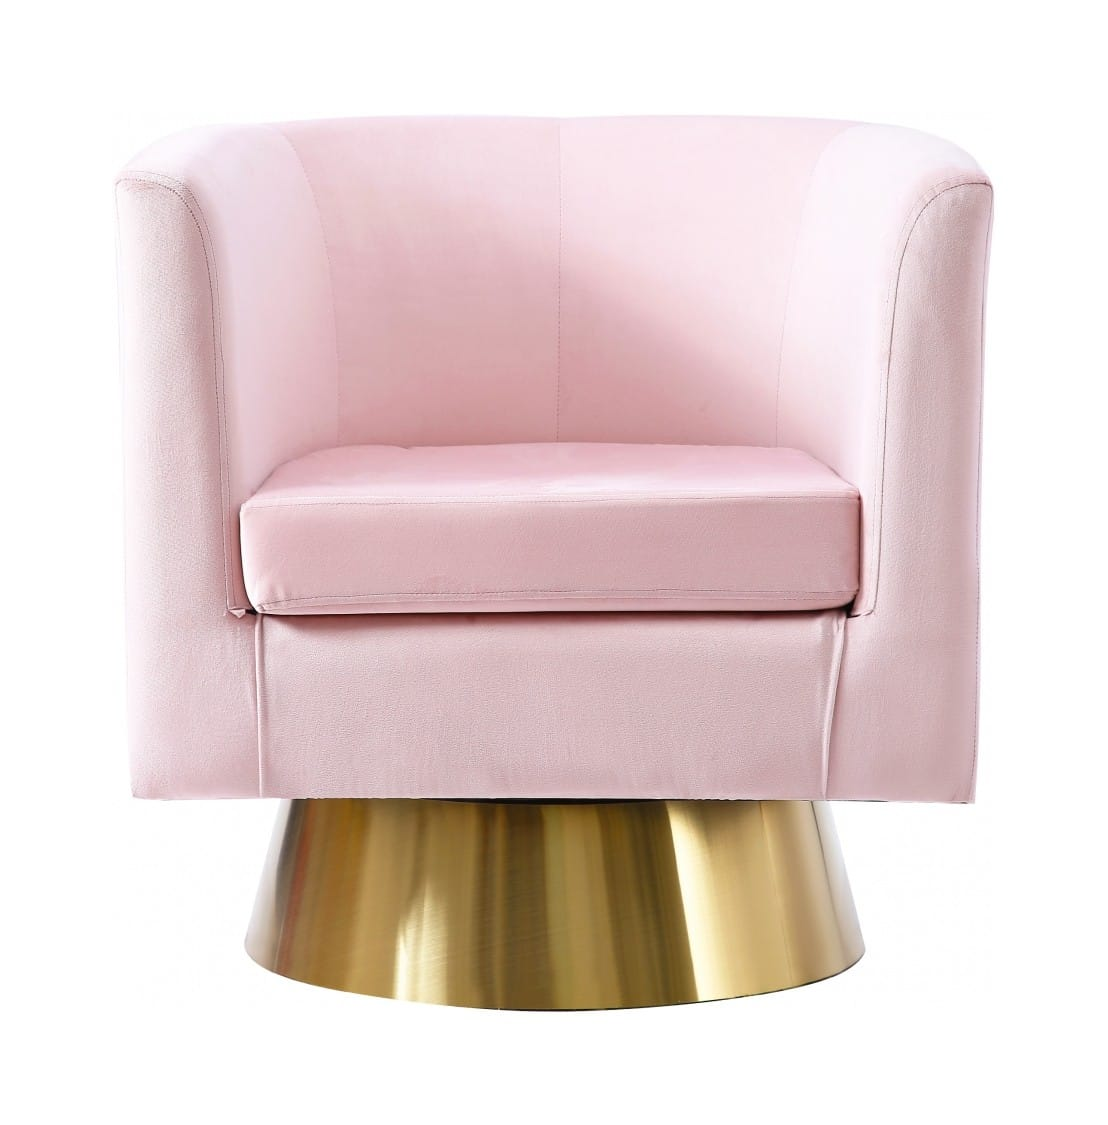 Superb Bellagio Pink Velvet Swivel Accent Chair By Meridian Furniture Dailytribune Chair Design For Home Dailytribuneorg